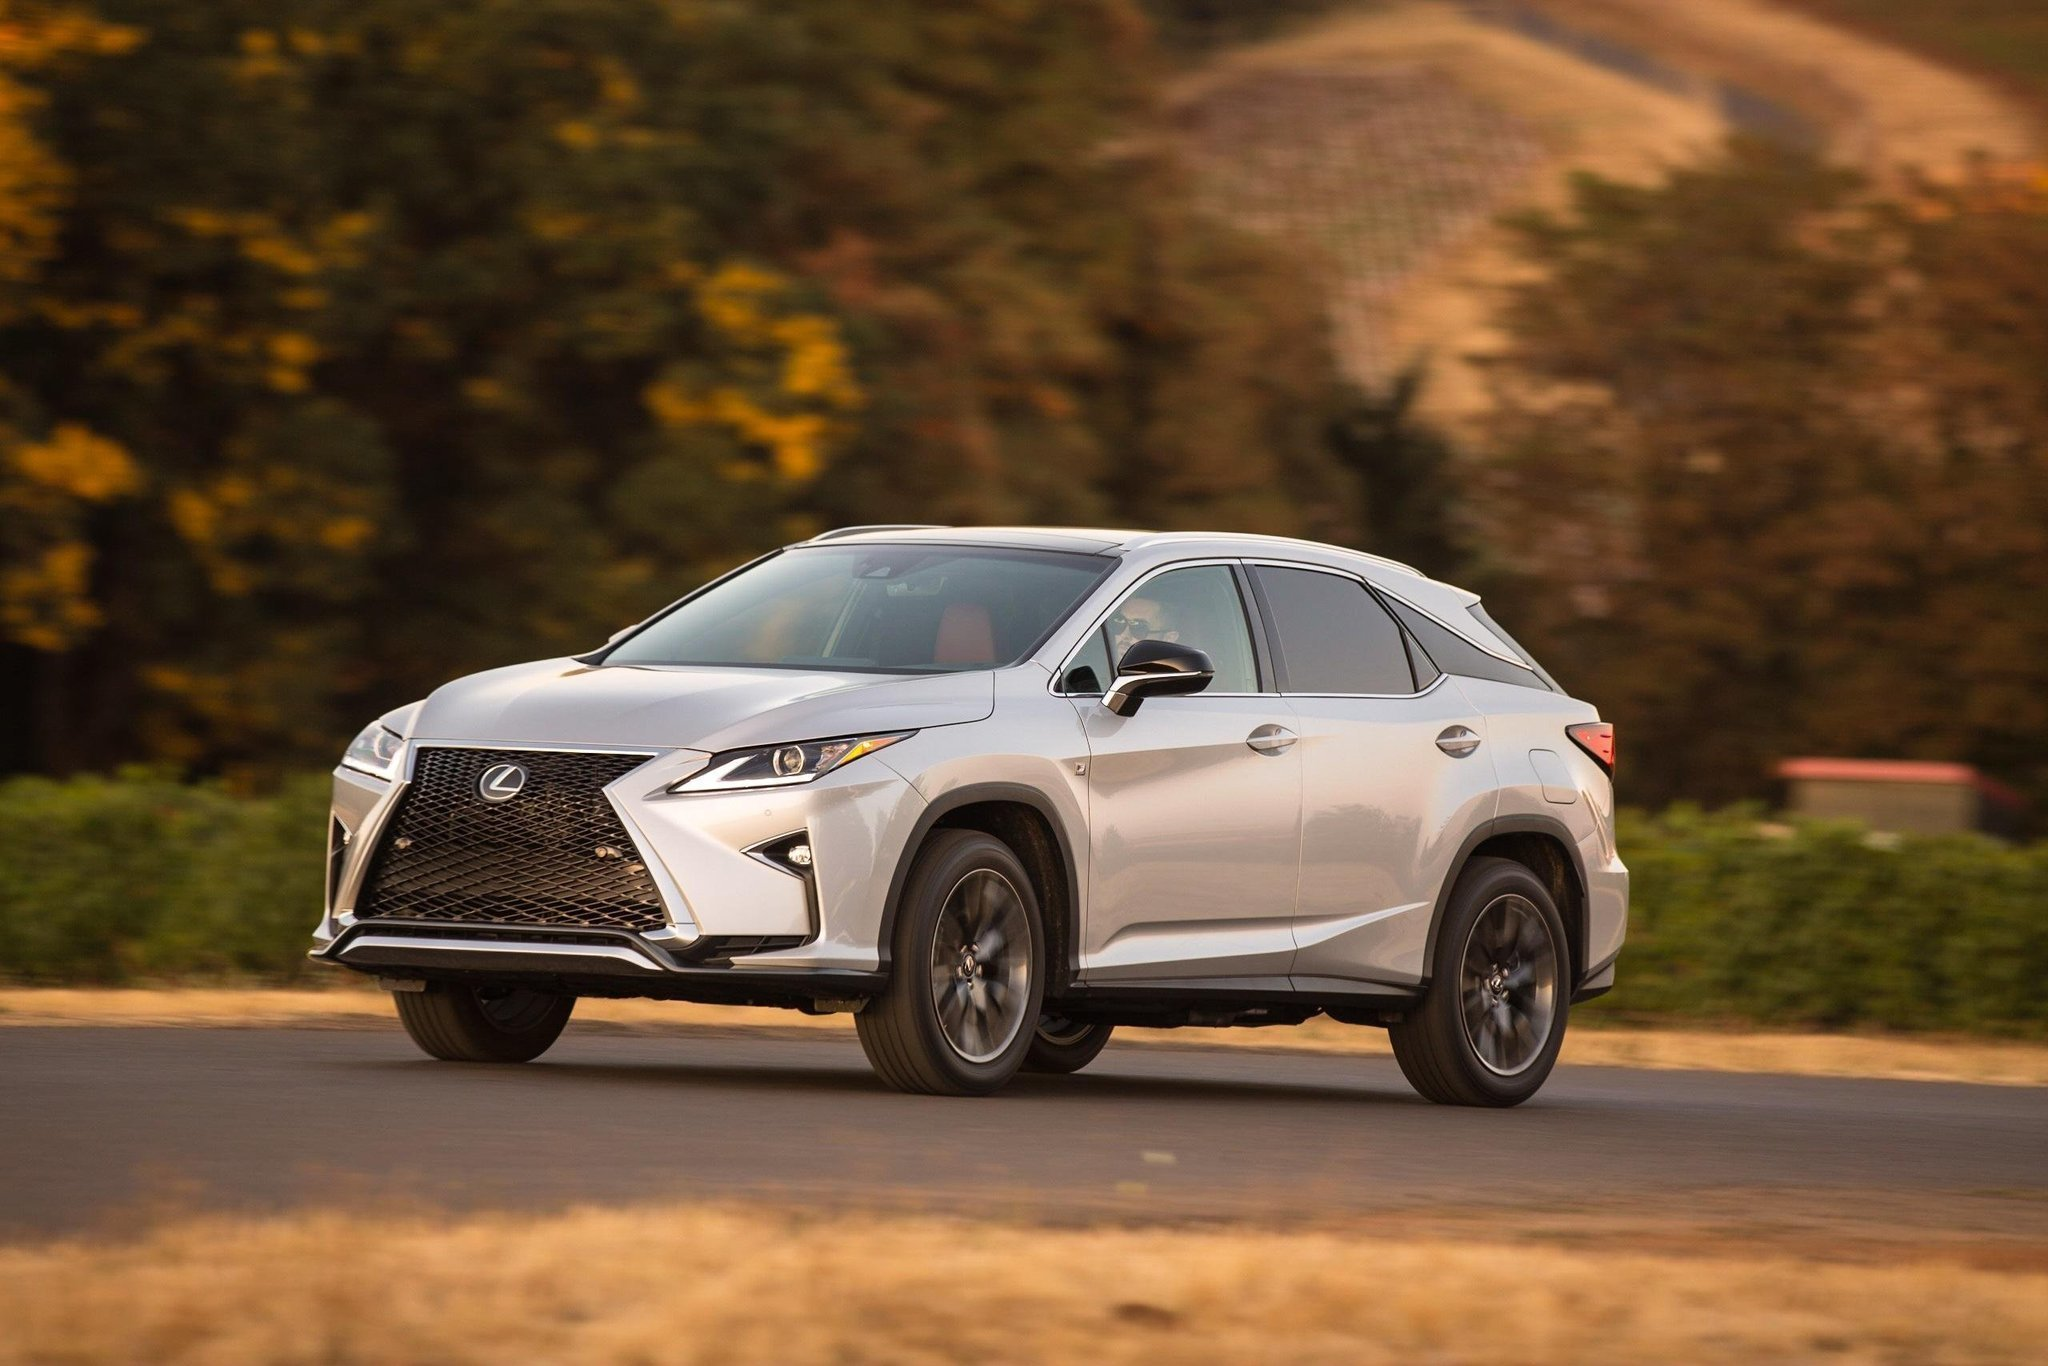 Fourth generation 2016 lexus rx midsize crossover redesigned for style ride comfort and luxury the san diego union tribune